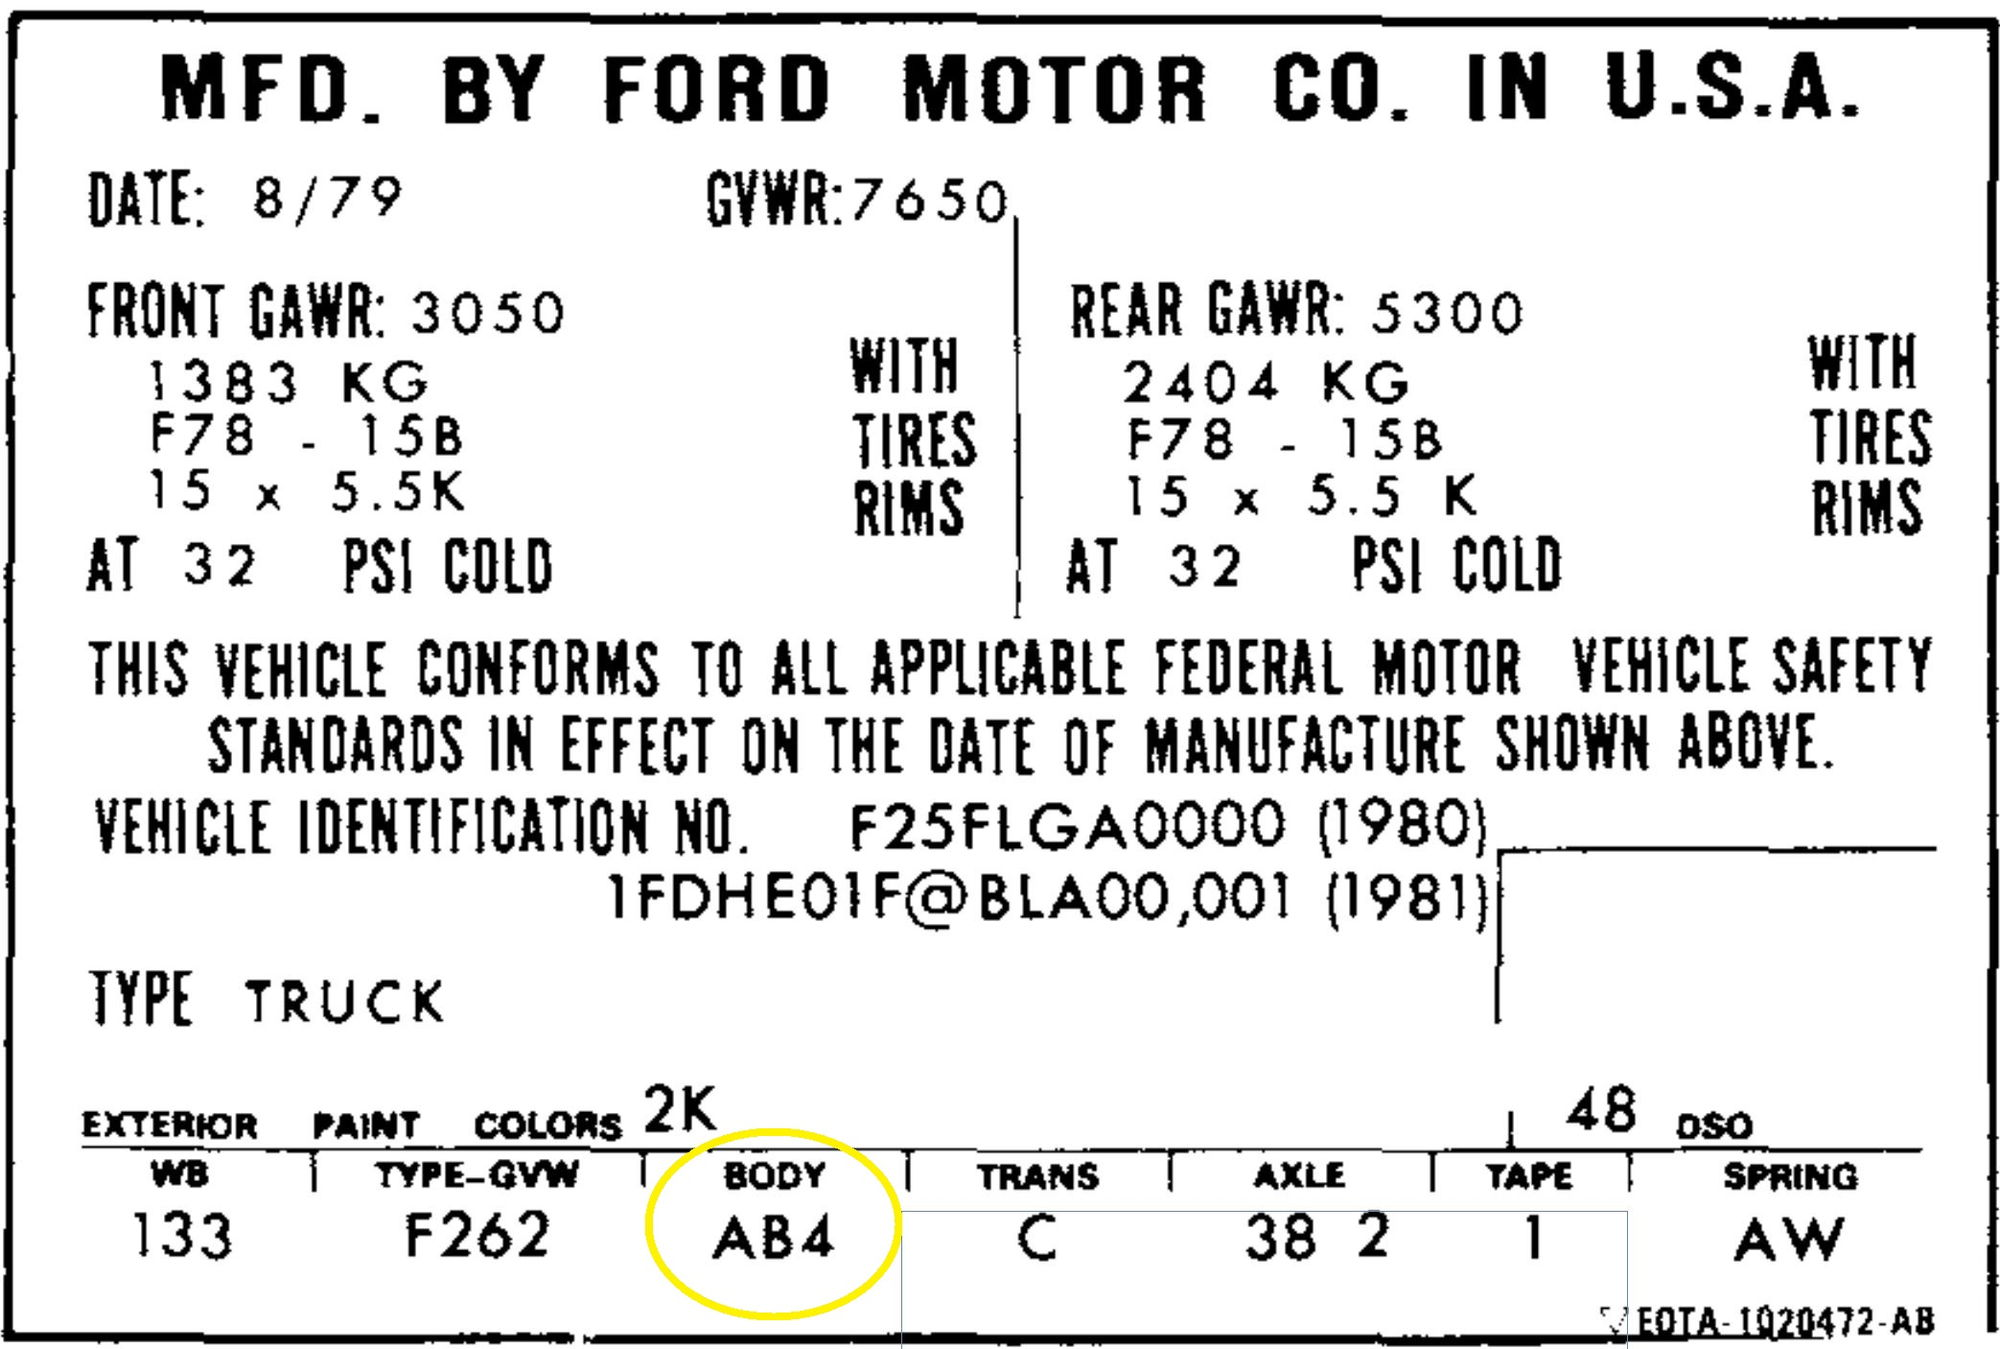 Color black interior color gray body truck engine 7 3l turbocharged - So If You Have An 80 With That Color Please Look At Your Certification Label Where I Ve Circled In Yellow And Let Me Know What It Says